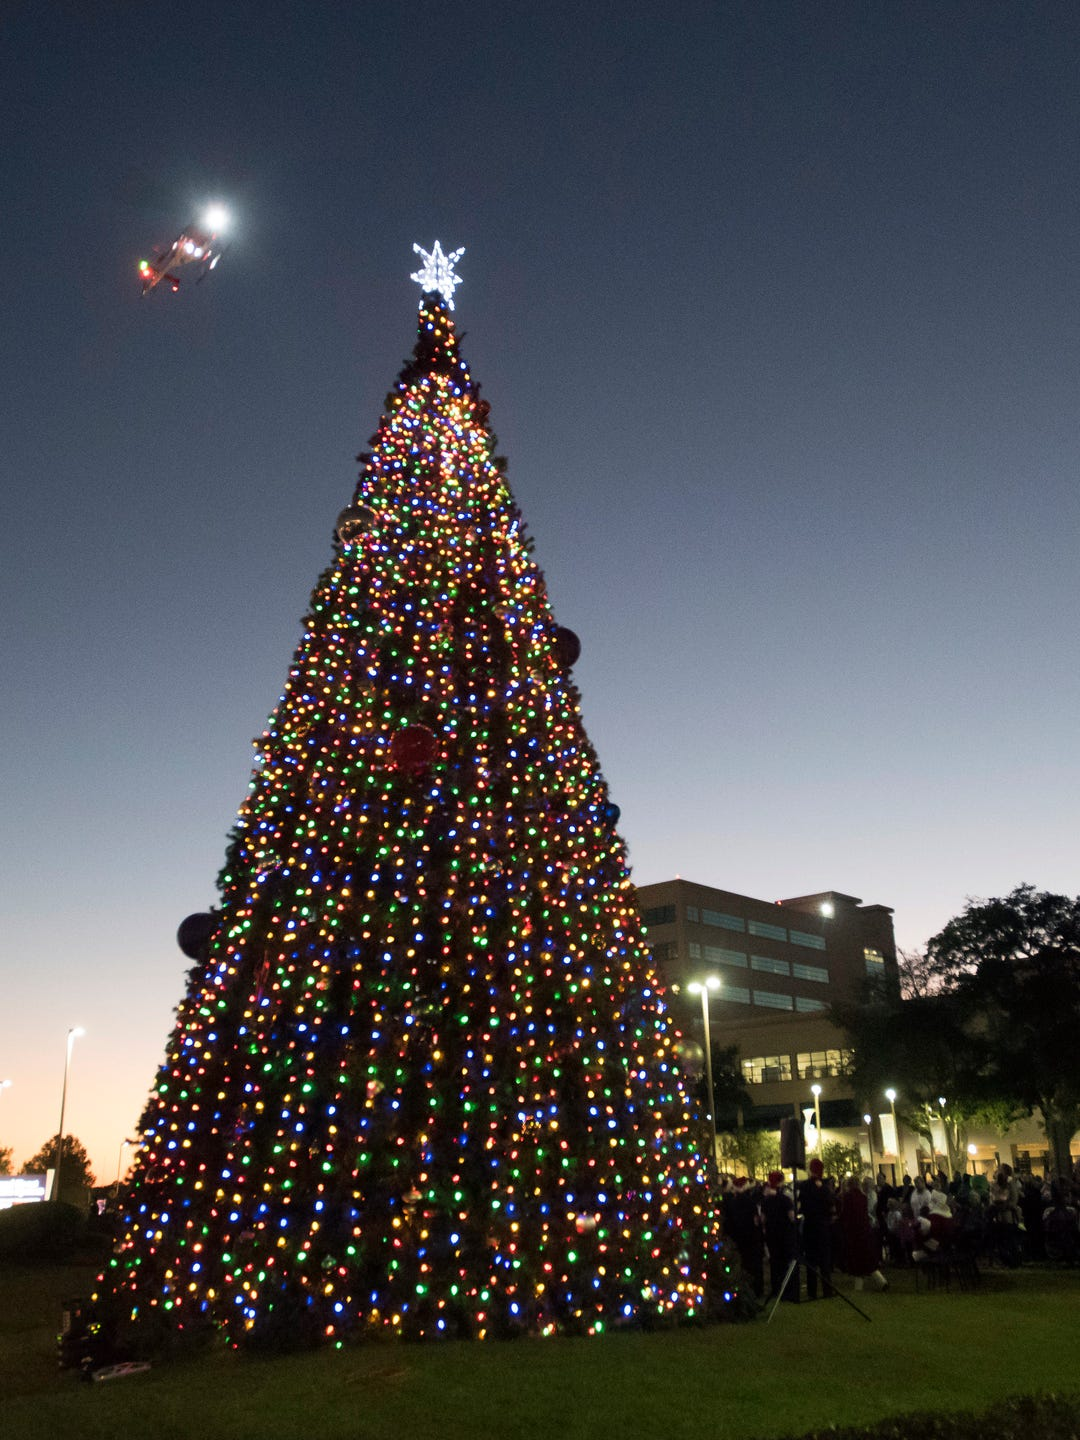 How Many Lights Per Foot Of Christmas Tree.Sacred Heart Throws The Switch To Light Up 40 Ft Christmas Tree